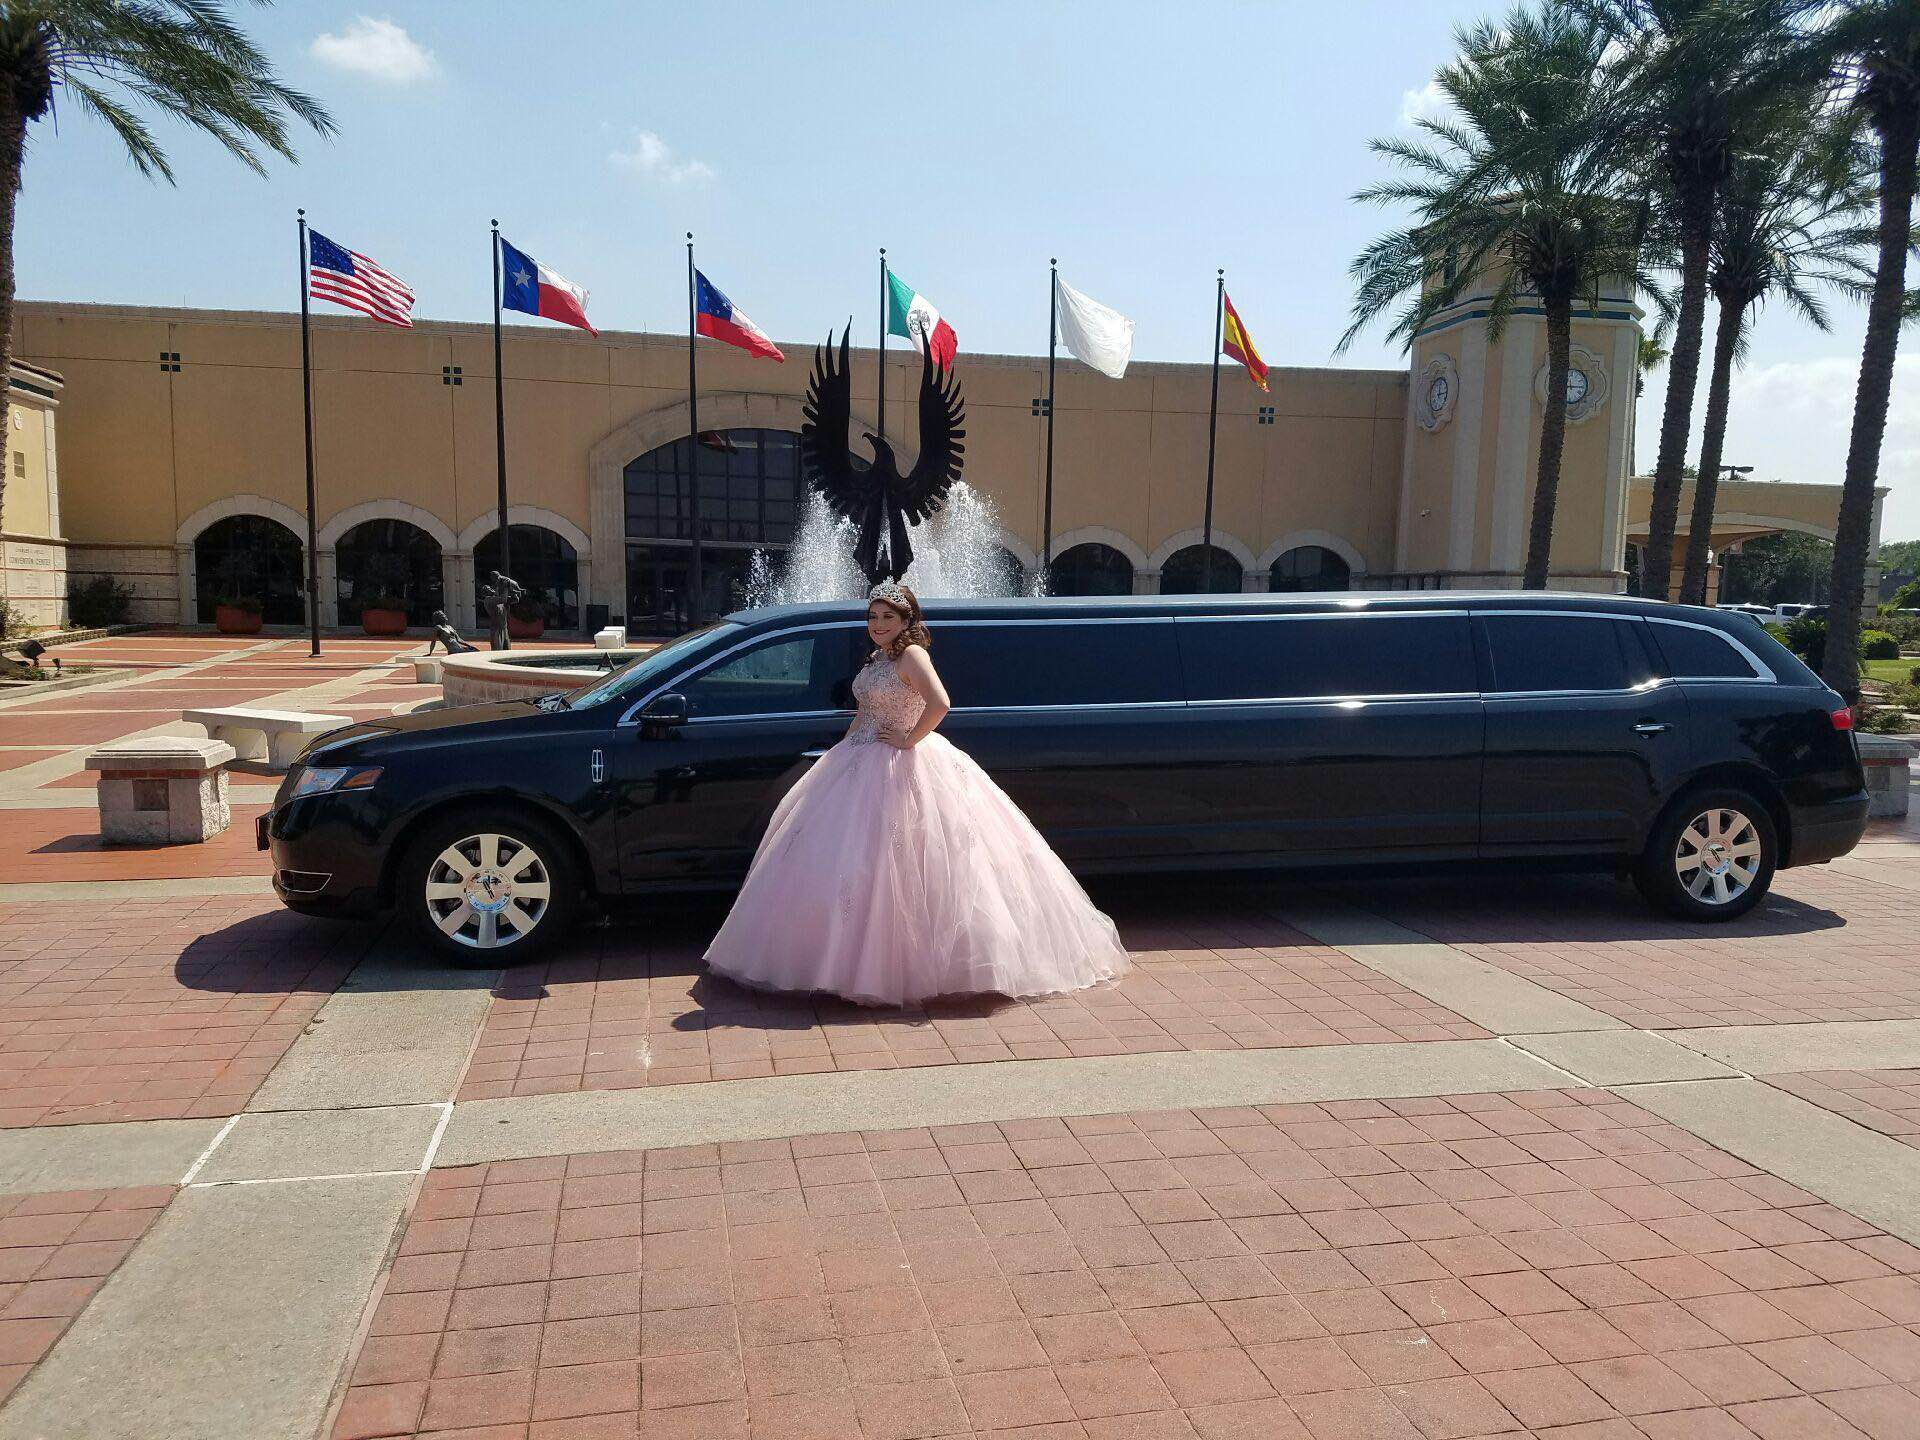 Instyle Limo Affordable Limo Rentals in Houston TX